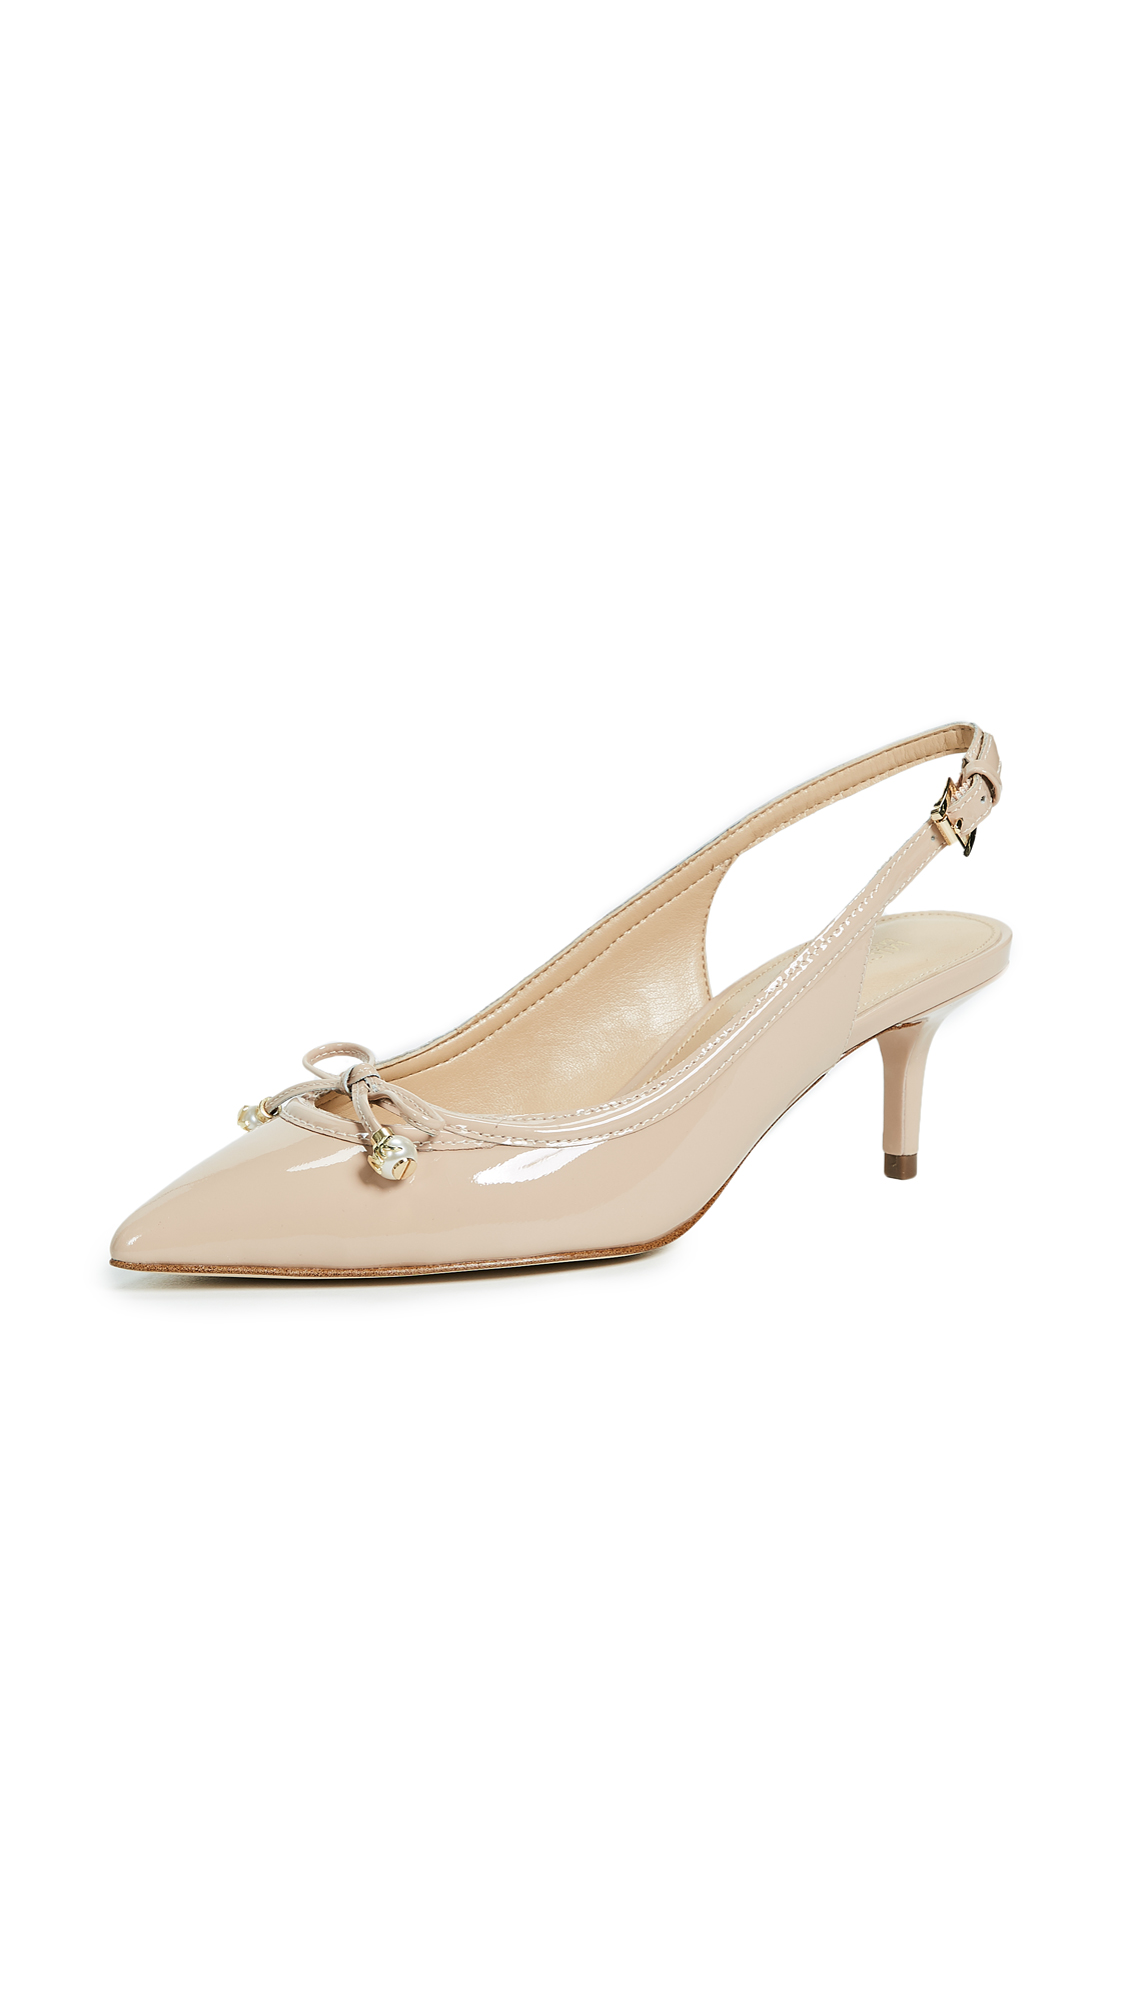 MICHAEL Michael Kors Gia Slingback Pumps - Light Blush